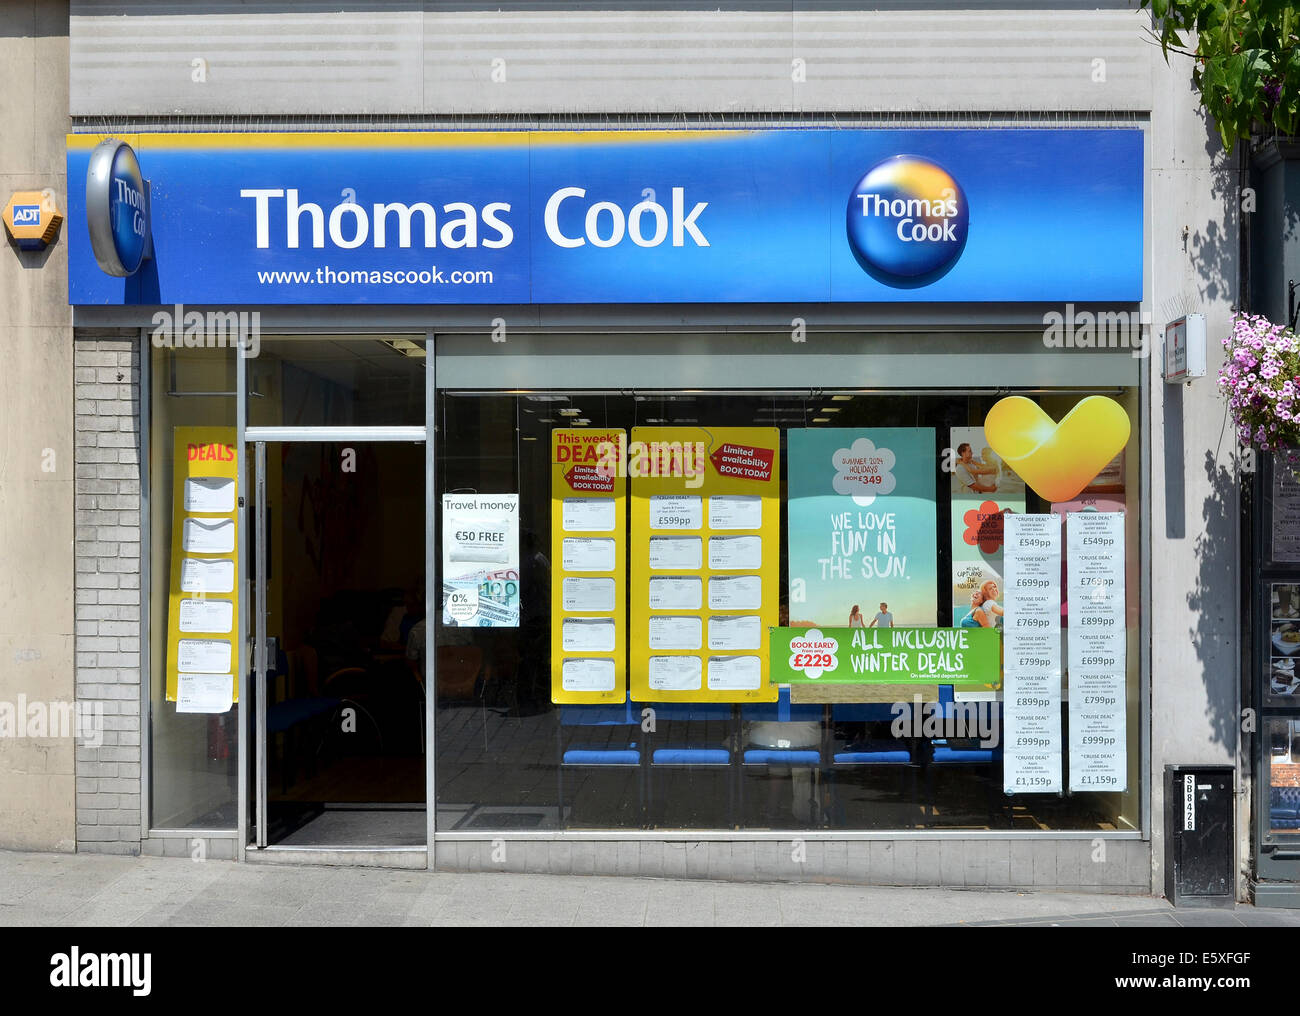 Thomas Cook travel agency office - Stock Image